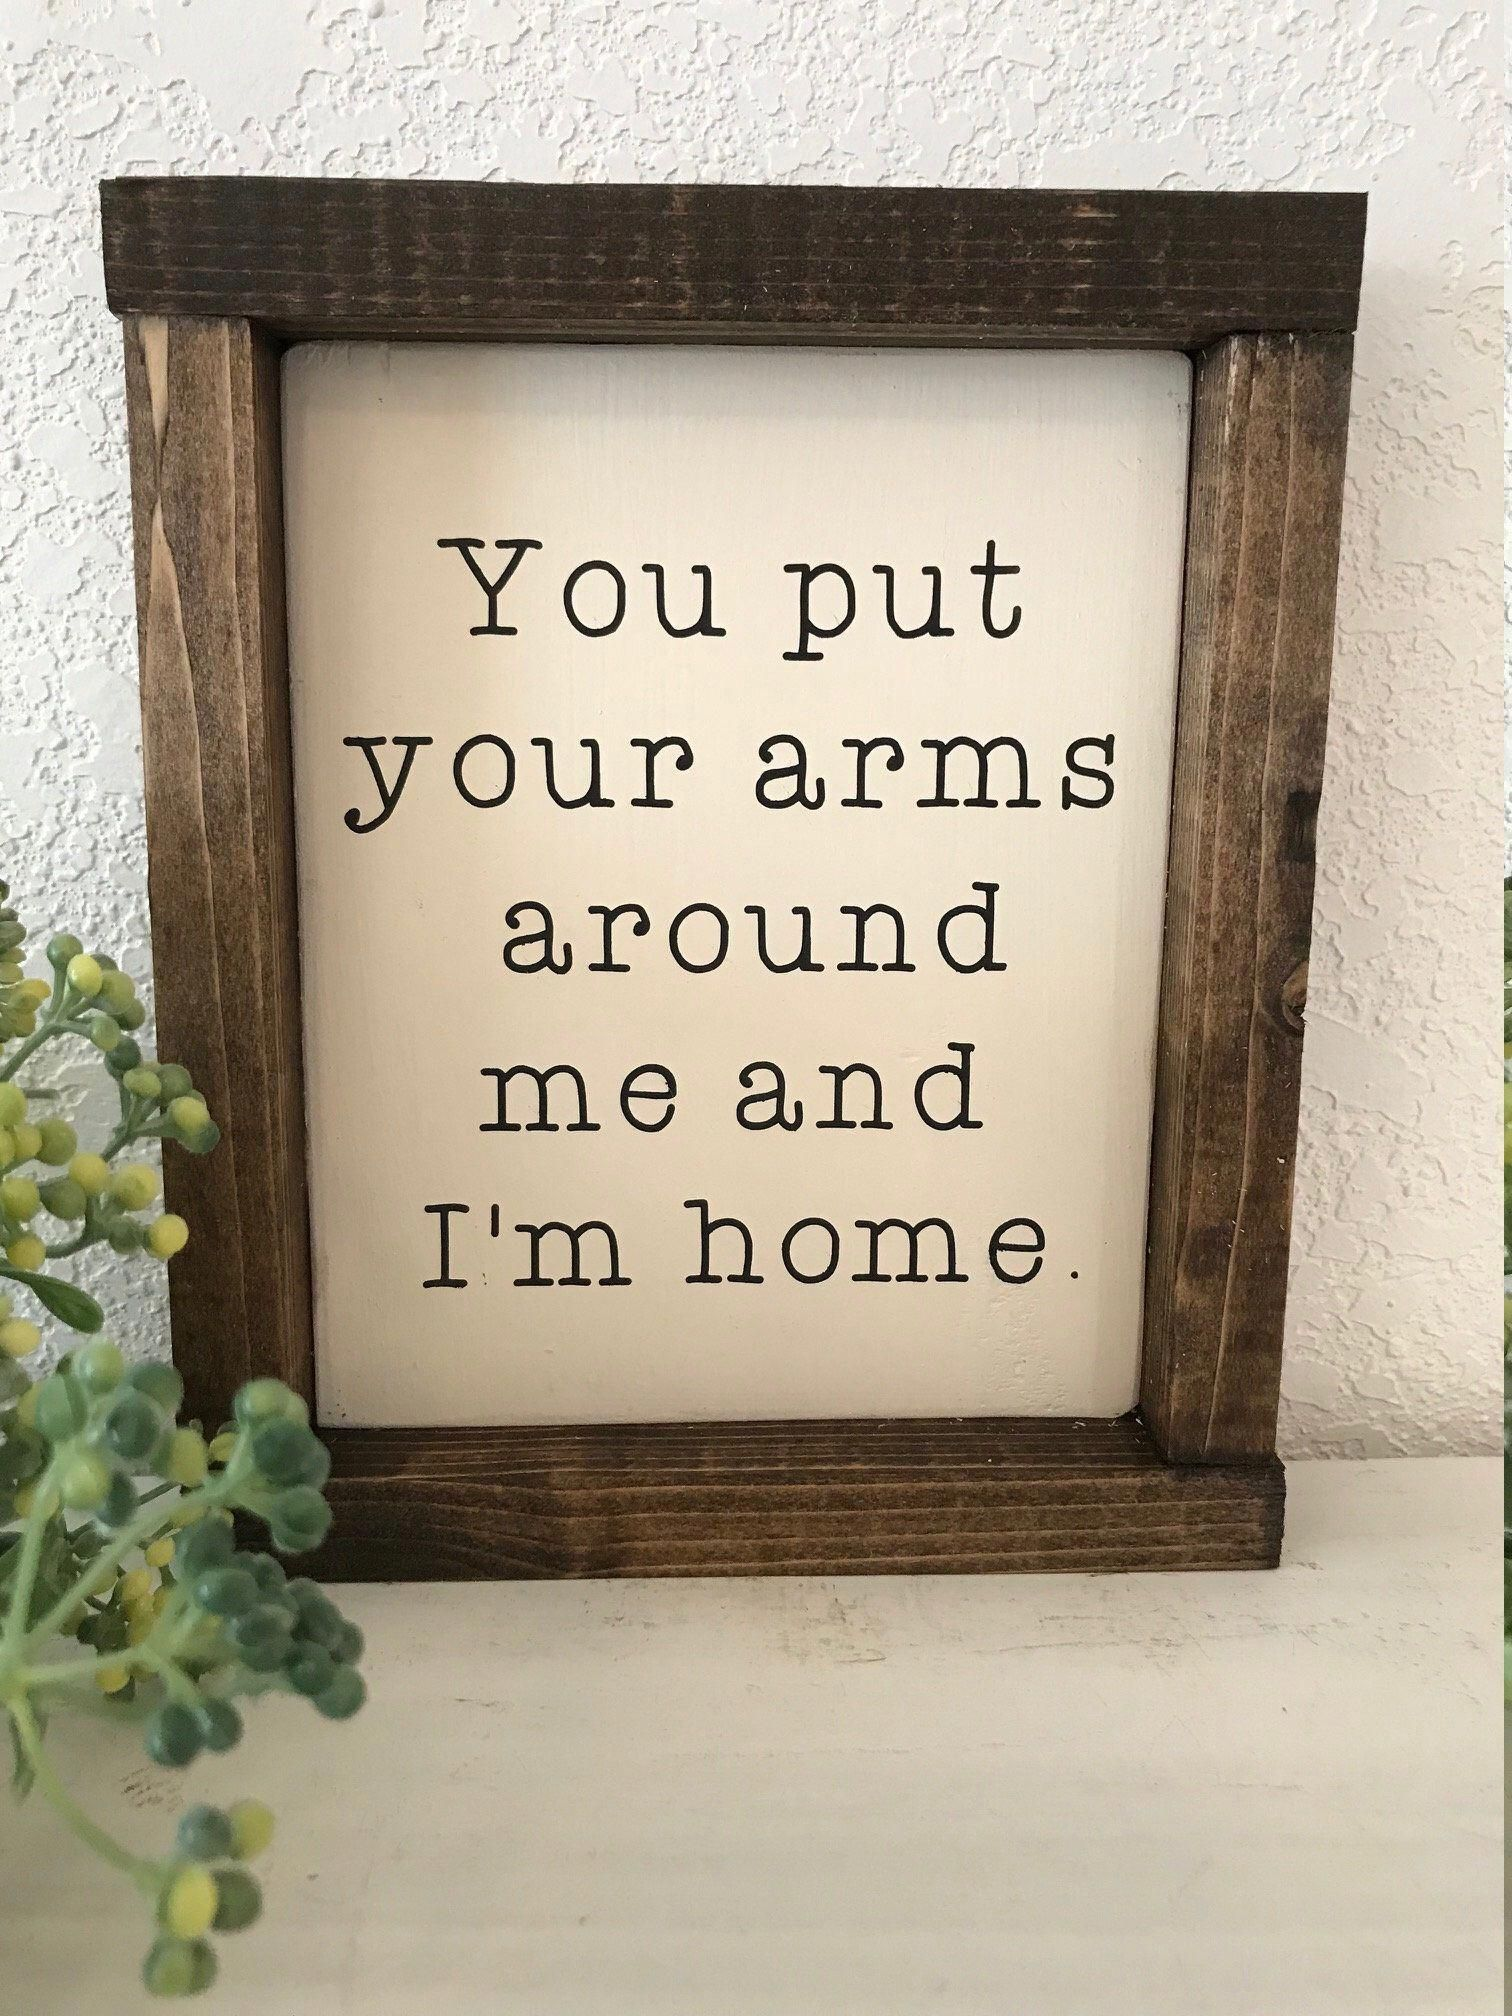 You put your arms around me and I'm home hand-painted | Etsy